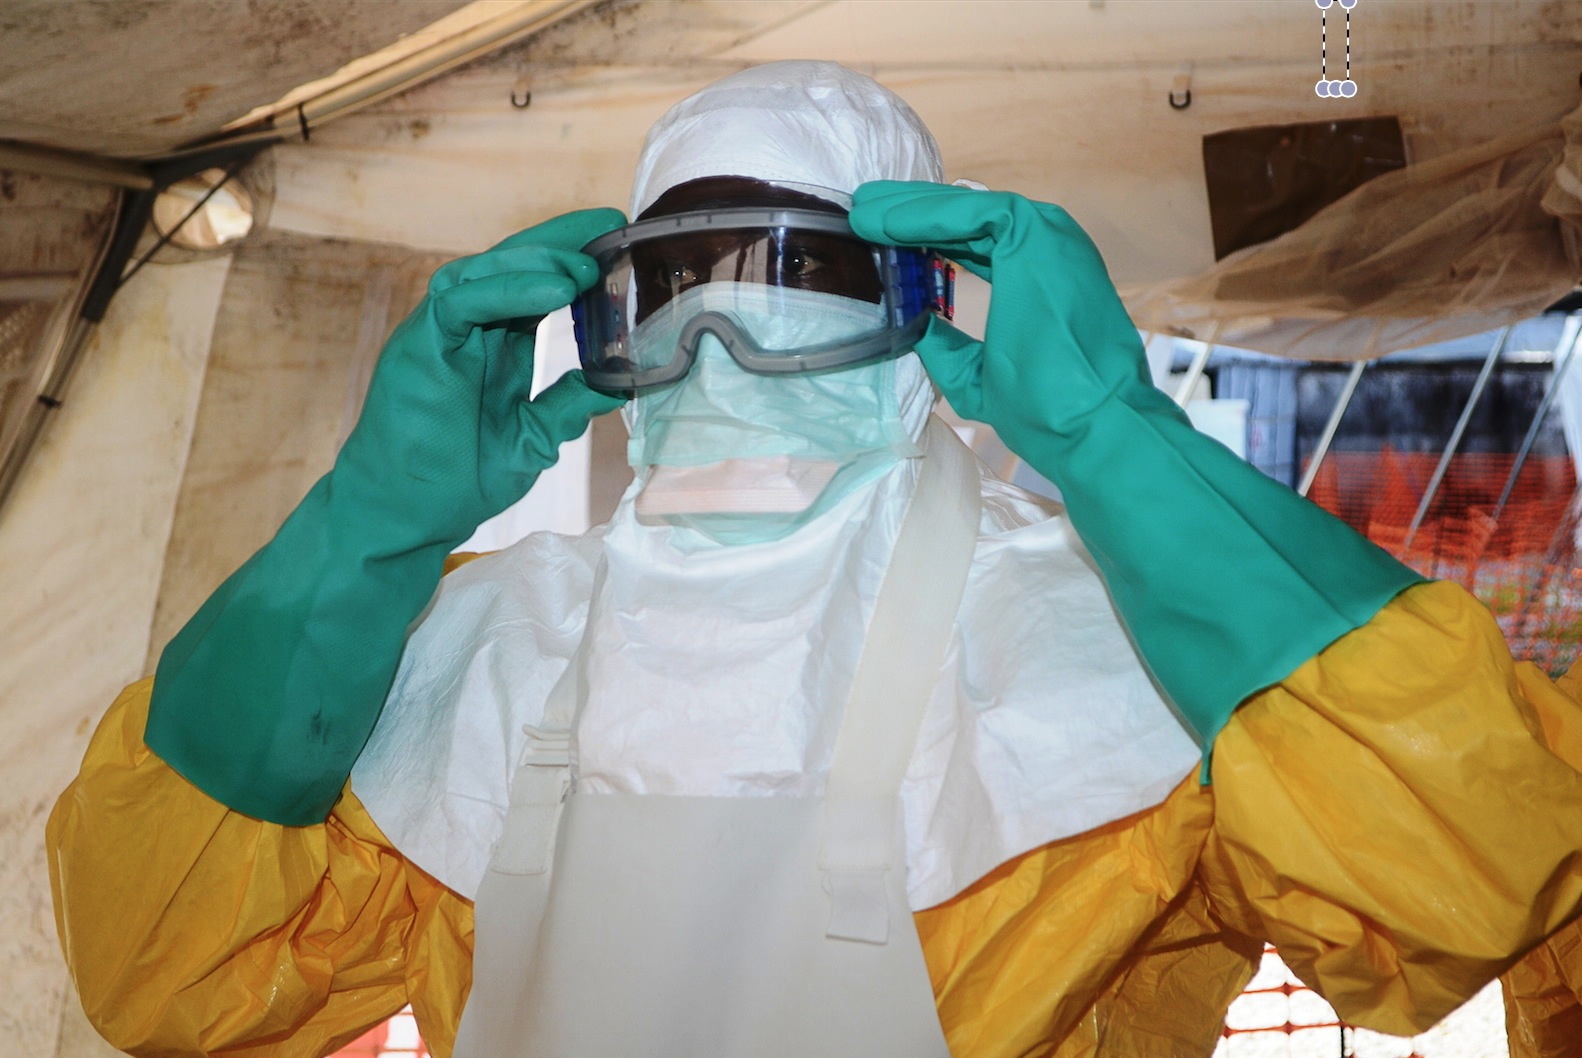 Is the U.S. at risk for Ebola outbreak?